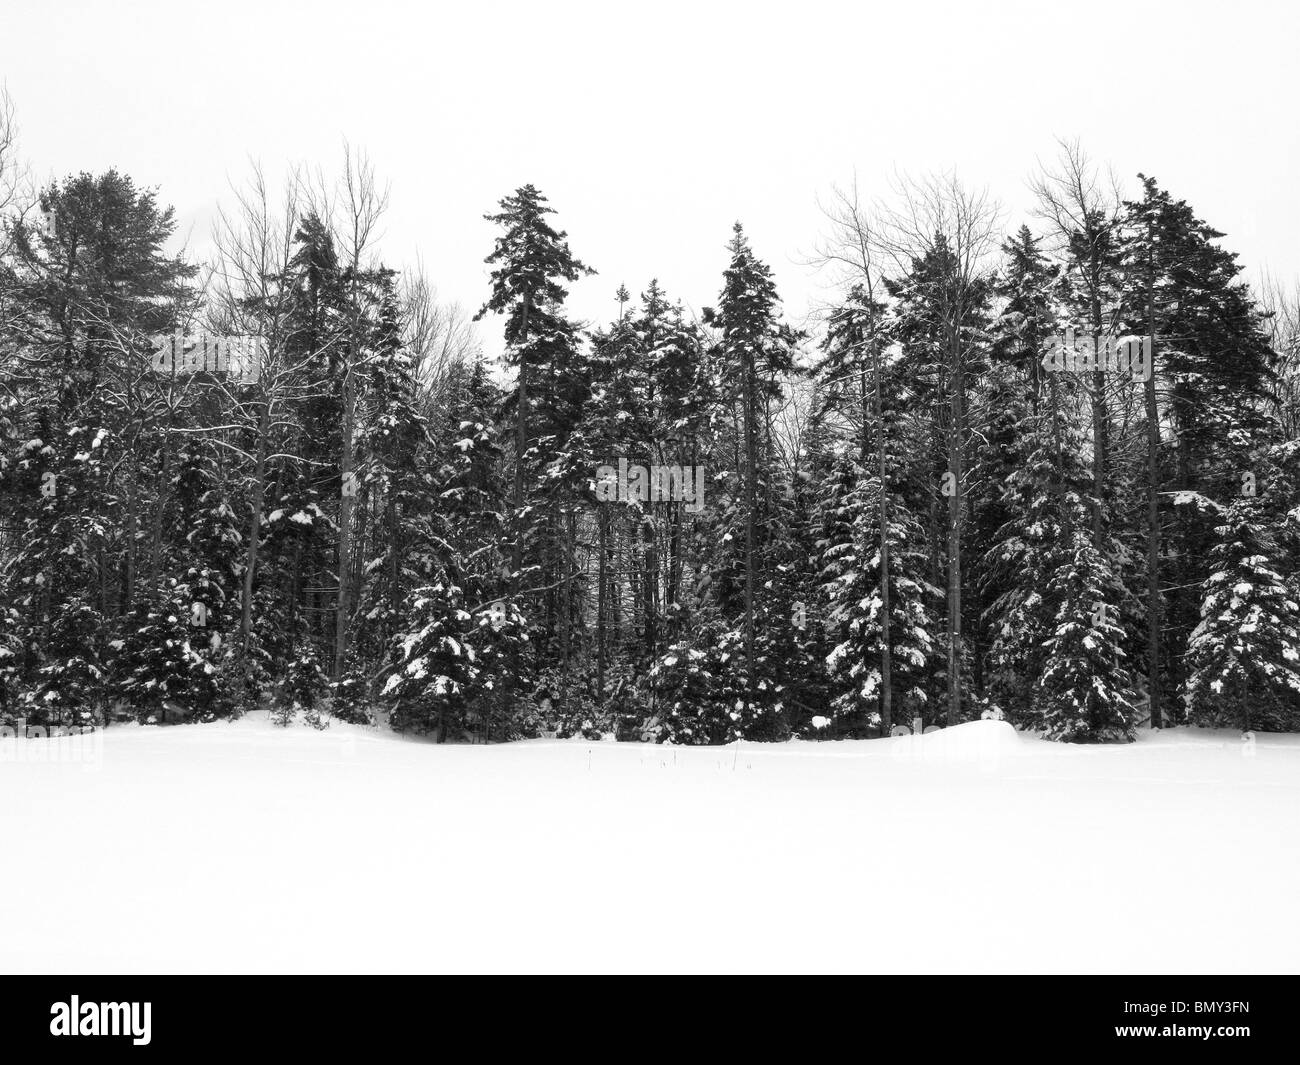 A line of forest green pine trees covered with winter snow. - Stock Image